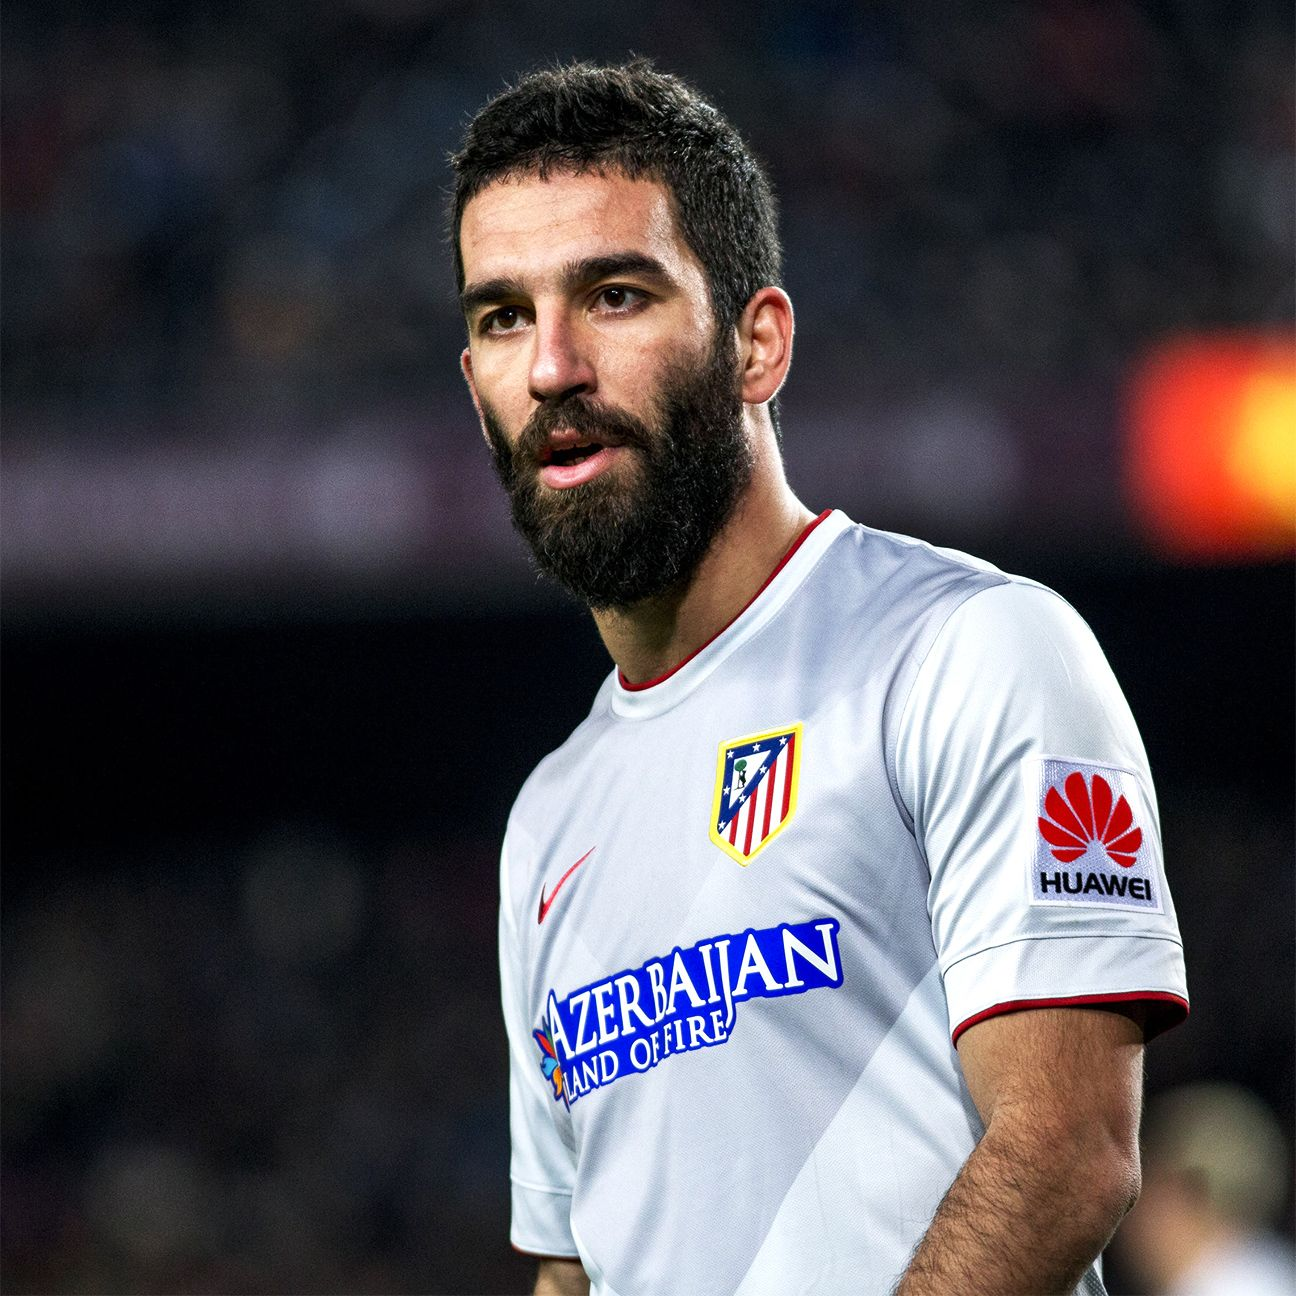 Arda Turan is on his way to Barcelona even though he will not be able to play a competitive match until January 2016.